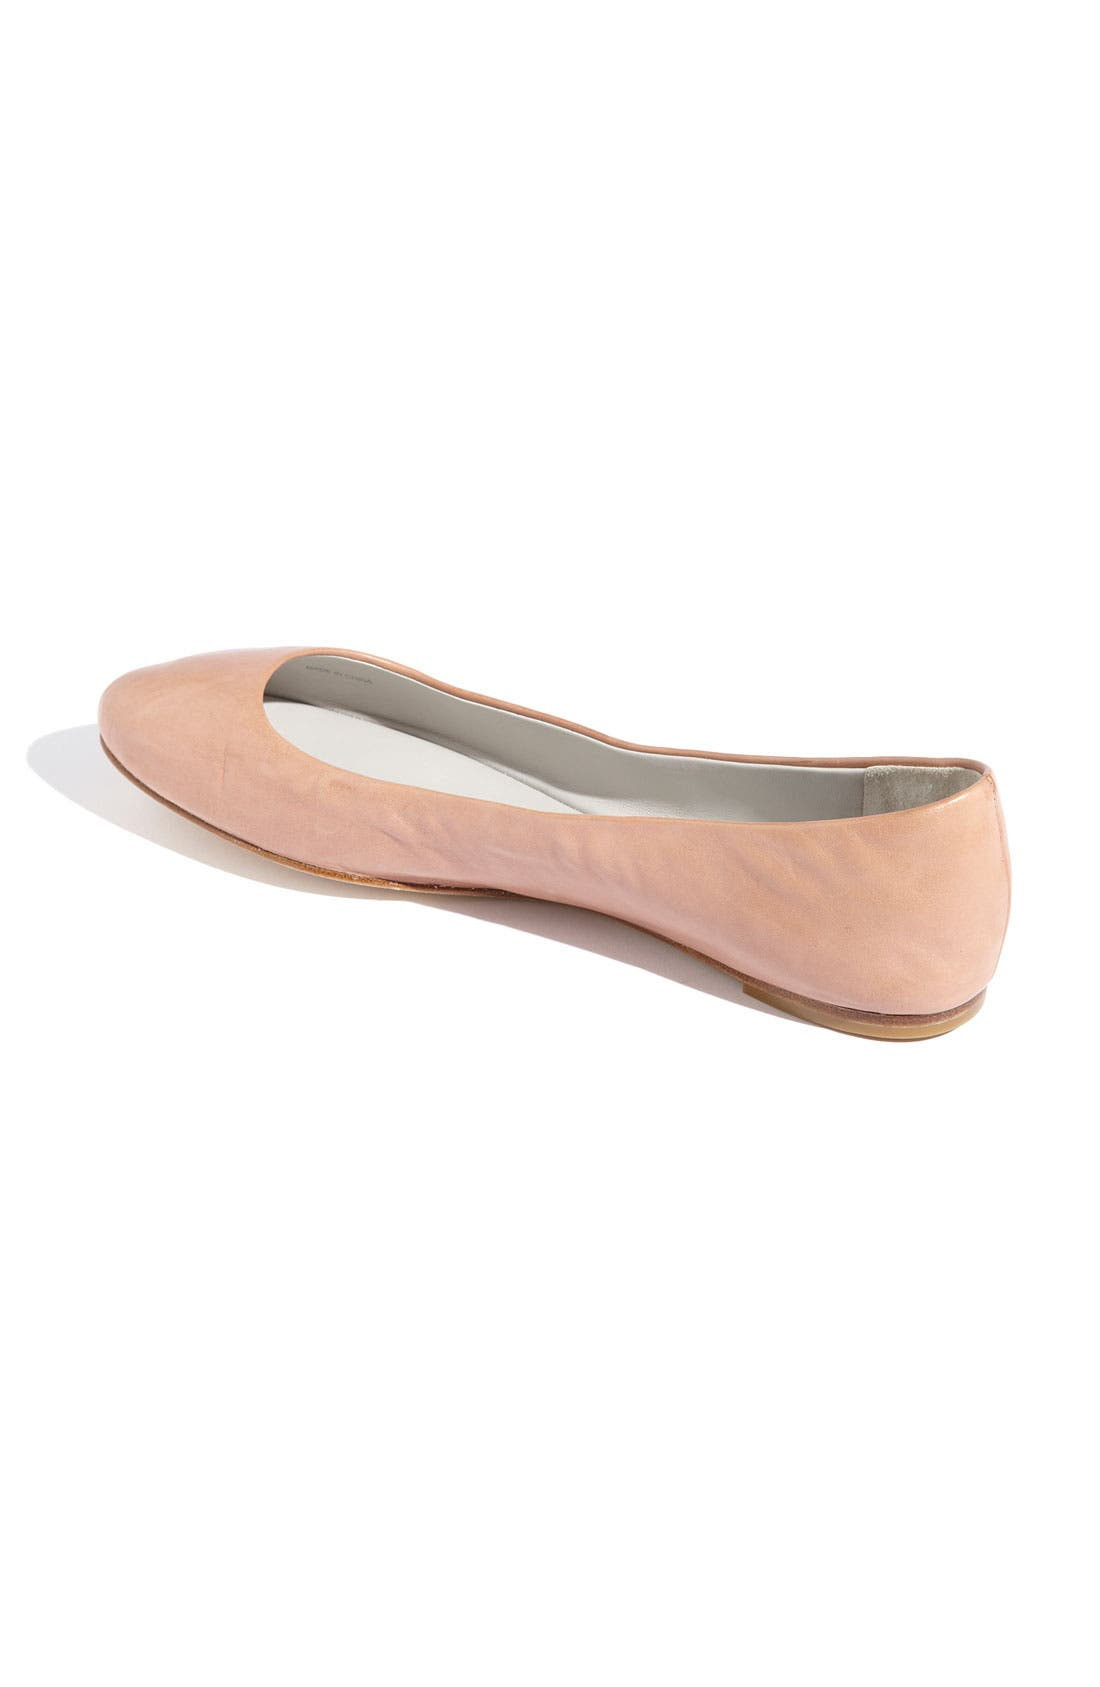 Alternate Image 2  - Vera Wang Footwear 'Lara' Flat